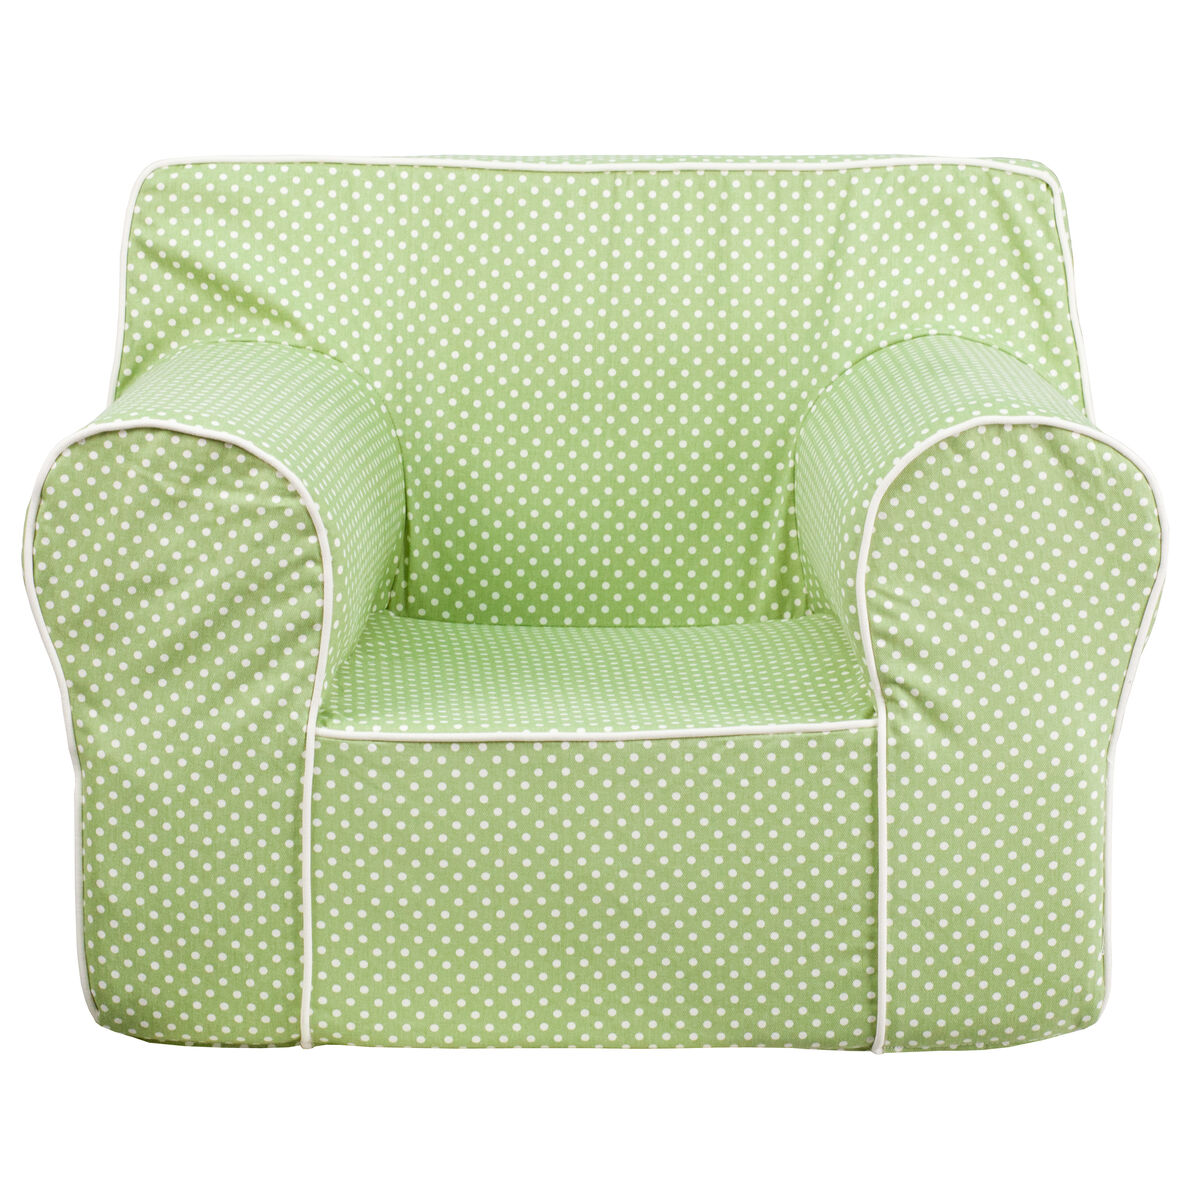 Flash furniture oversized green dot kids chair with white for Oversized kids chair